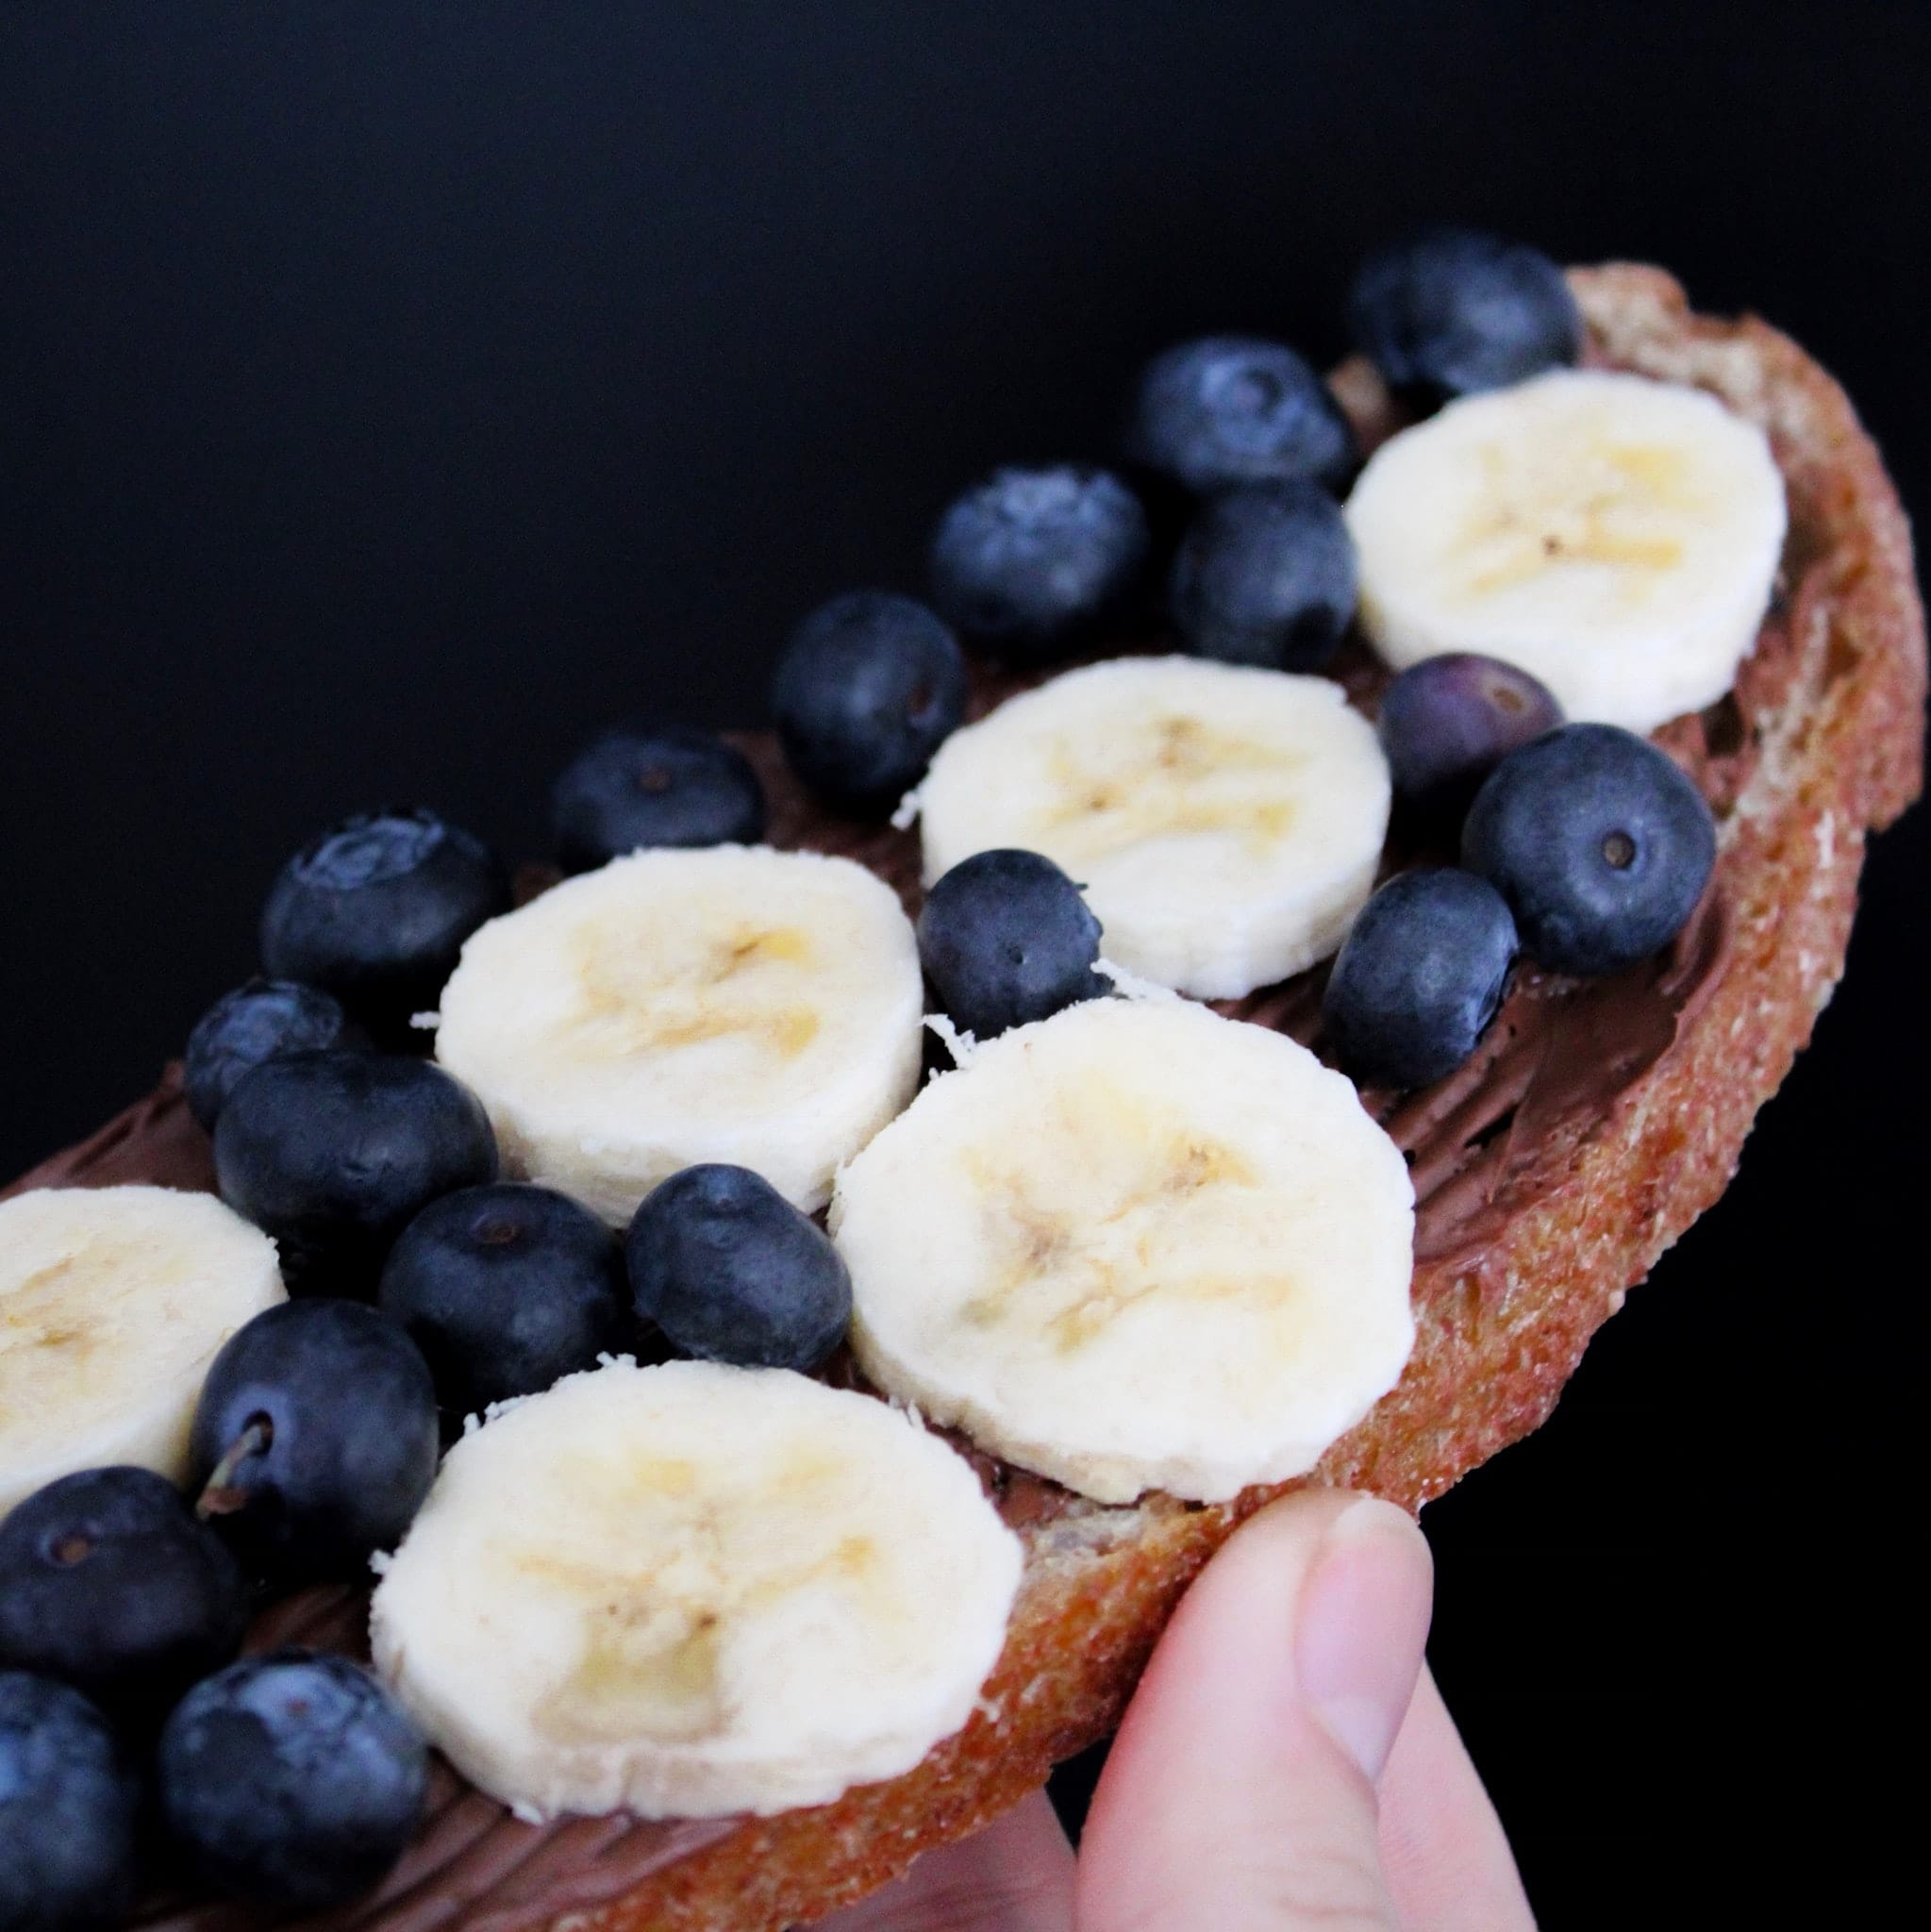 banana-berries-alignthoughts-